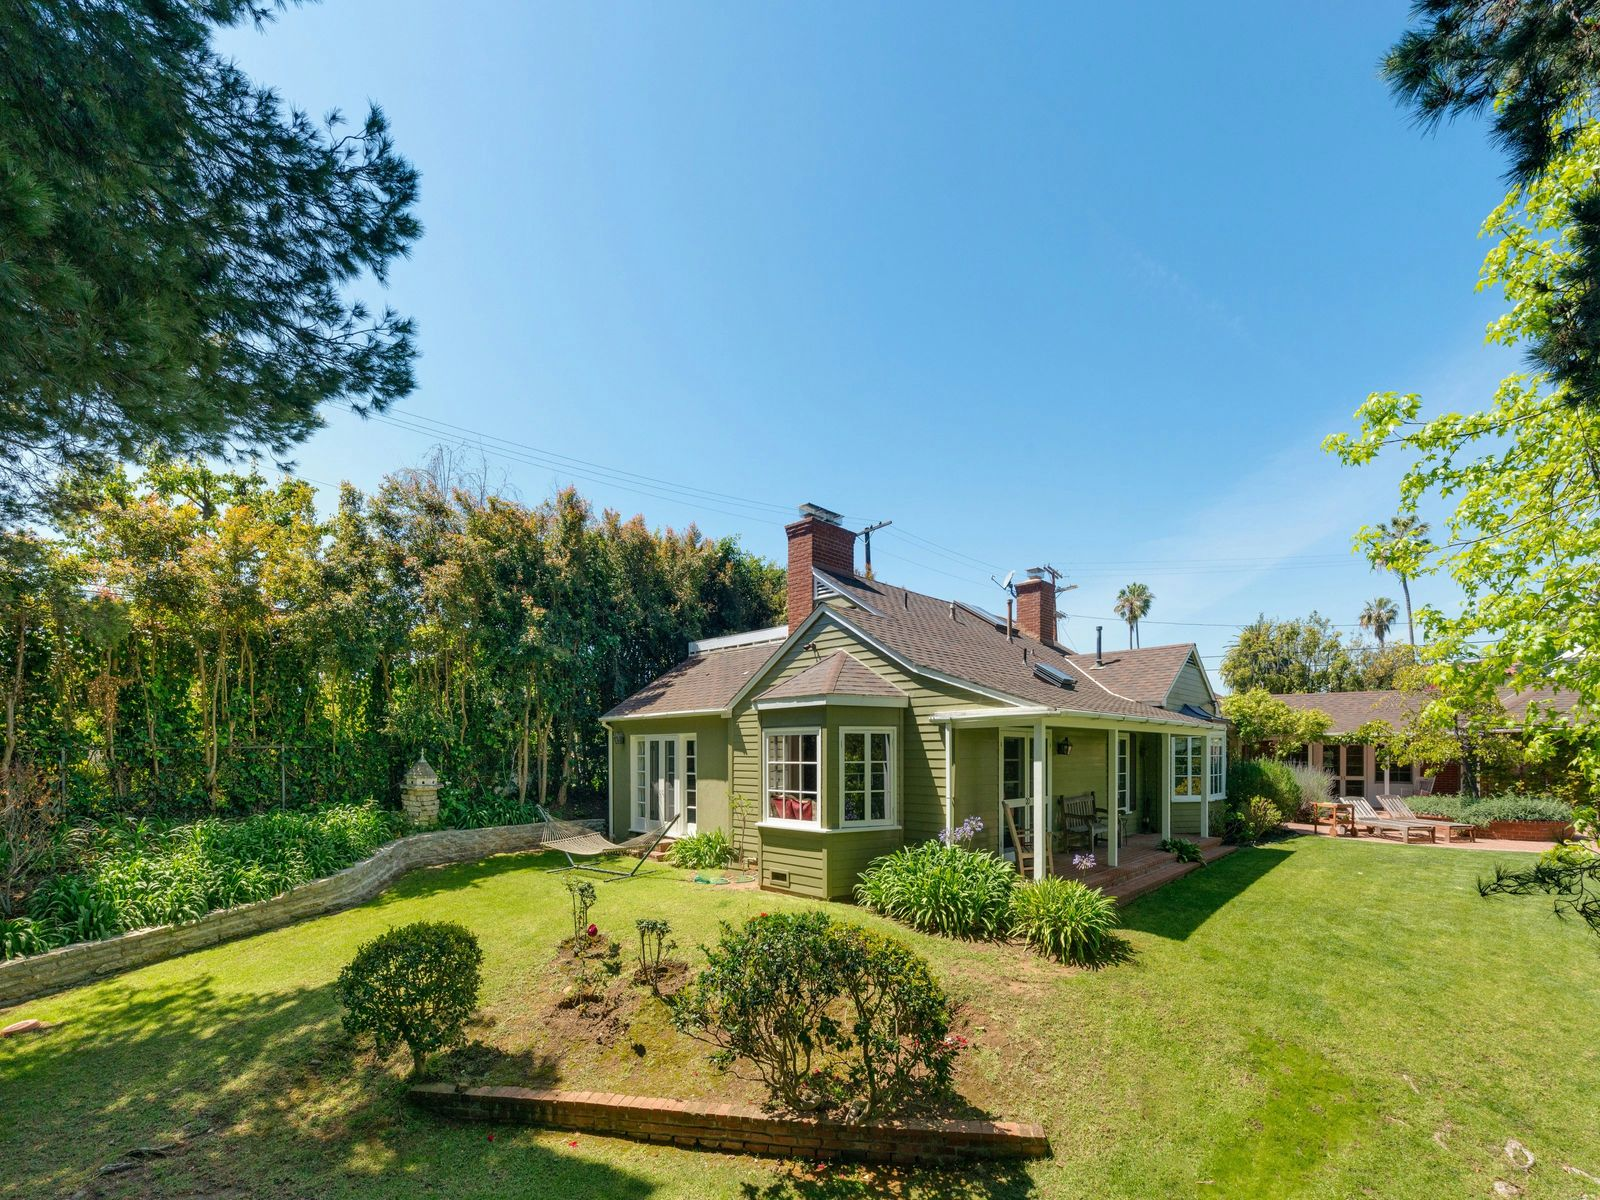 Charming Gracious Traditional, Pacific Palisades CA Single Family Home - Los Angeles Real Estate